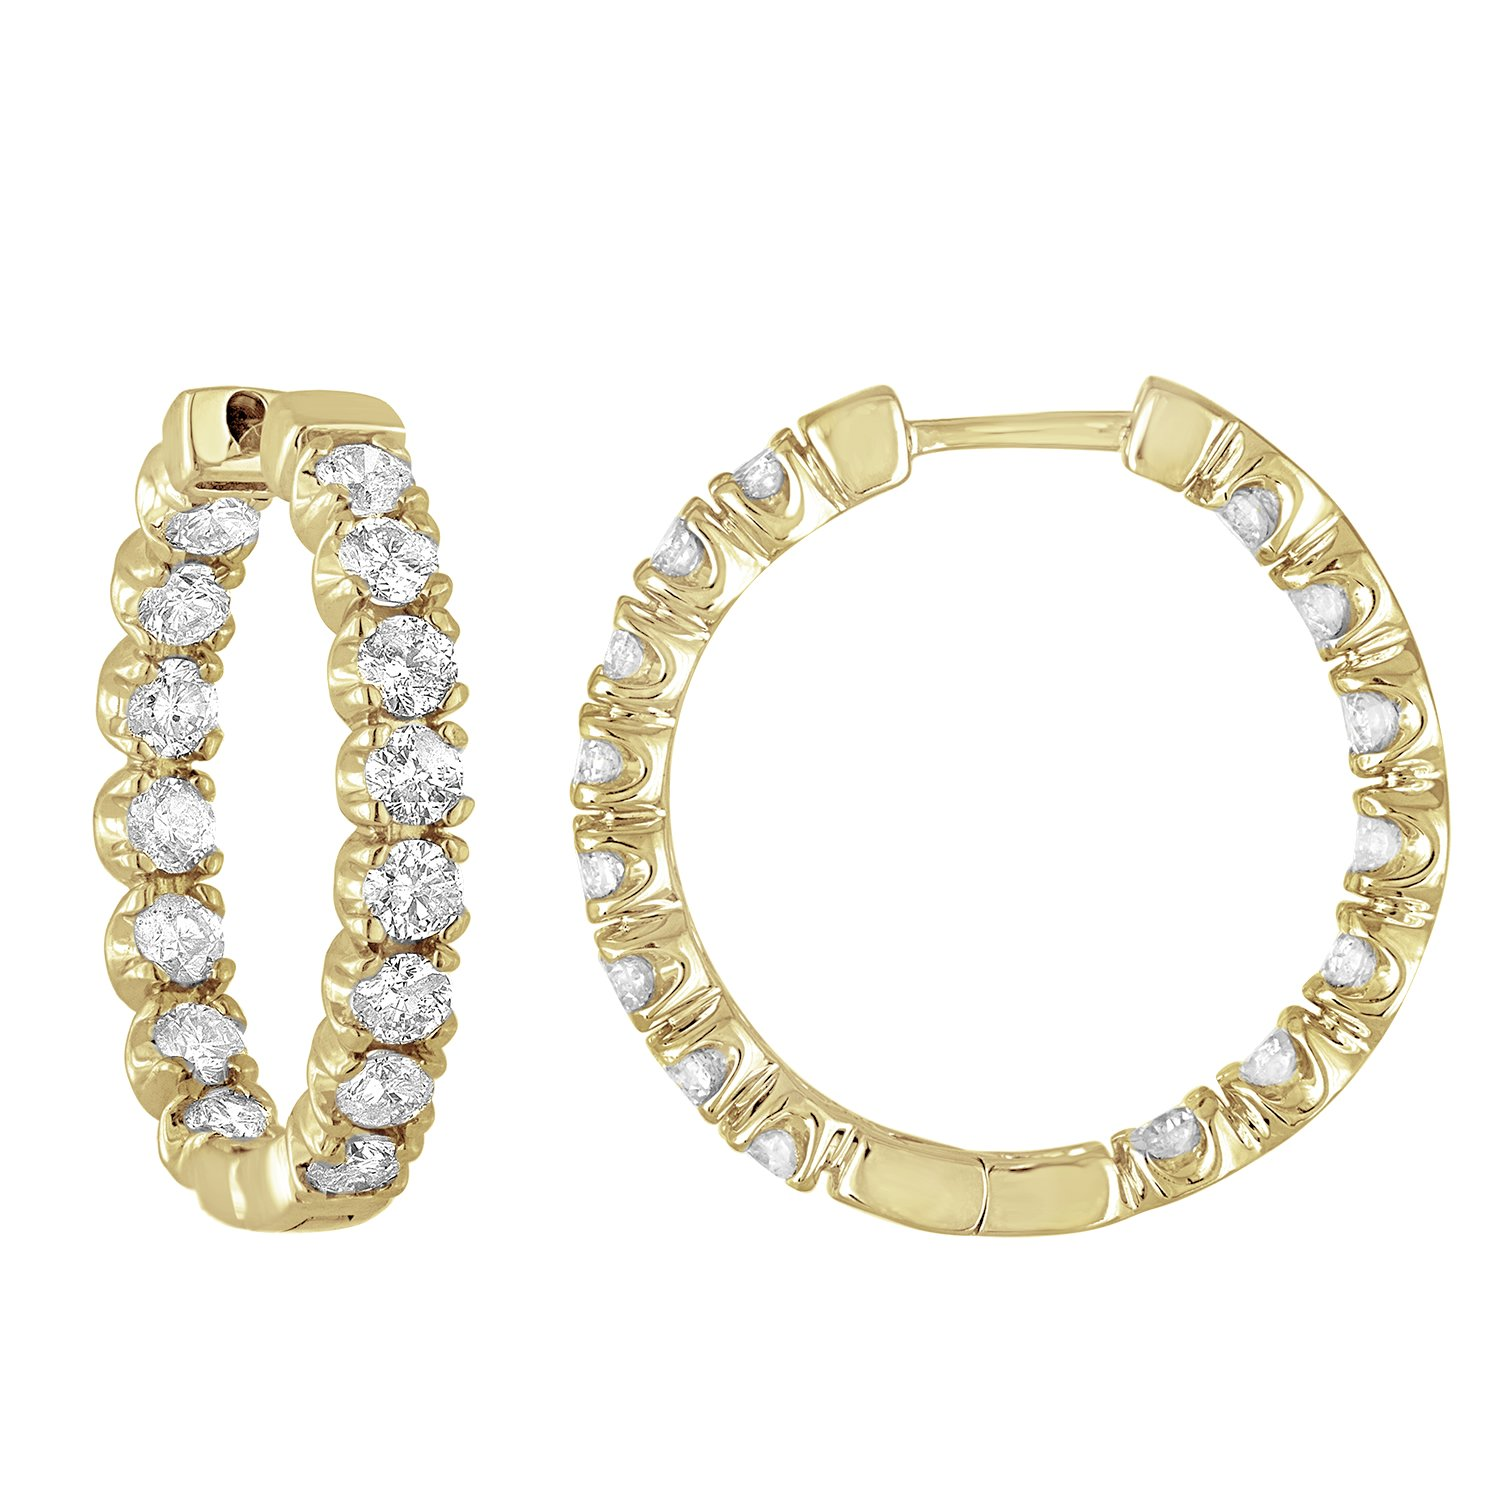 4 cttw Certified Diamond Hoop Earrings 14K Yellow Gold I1-I2 Clarity, G-H Color